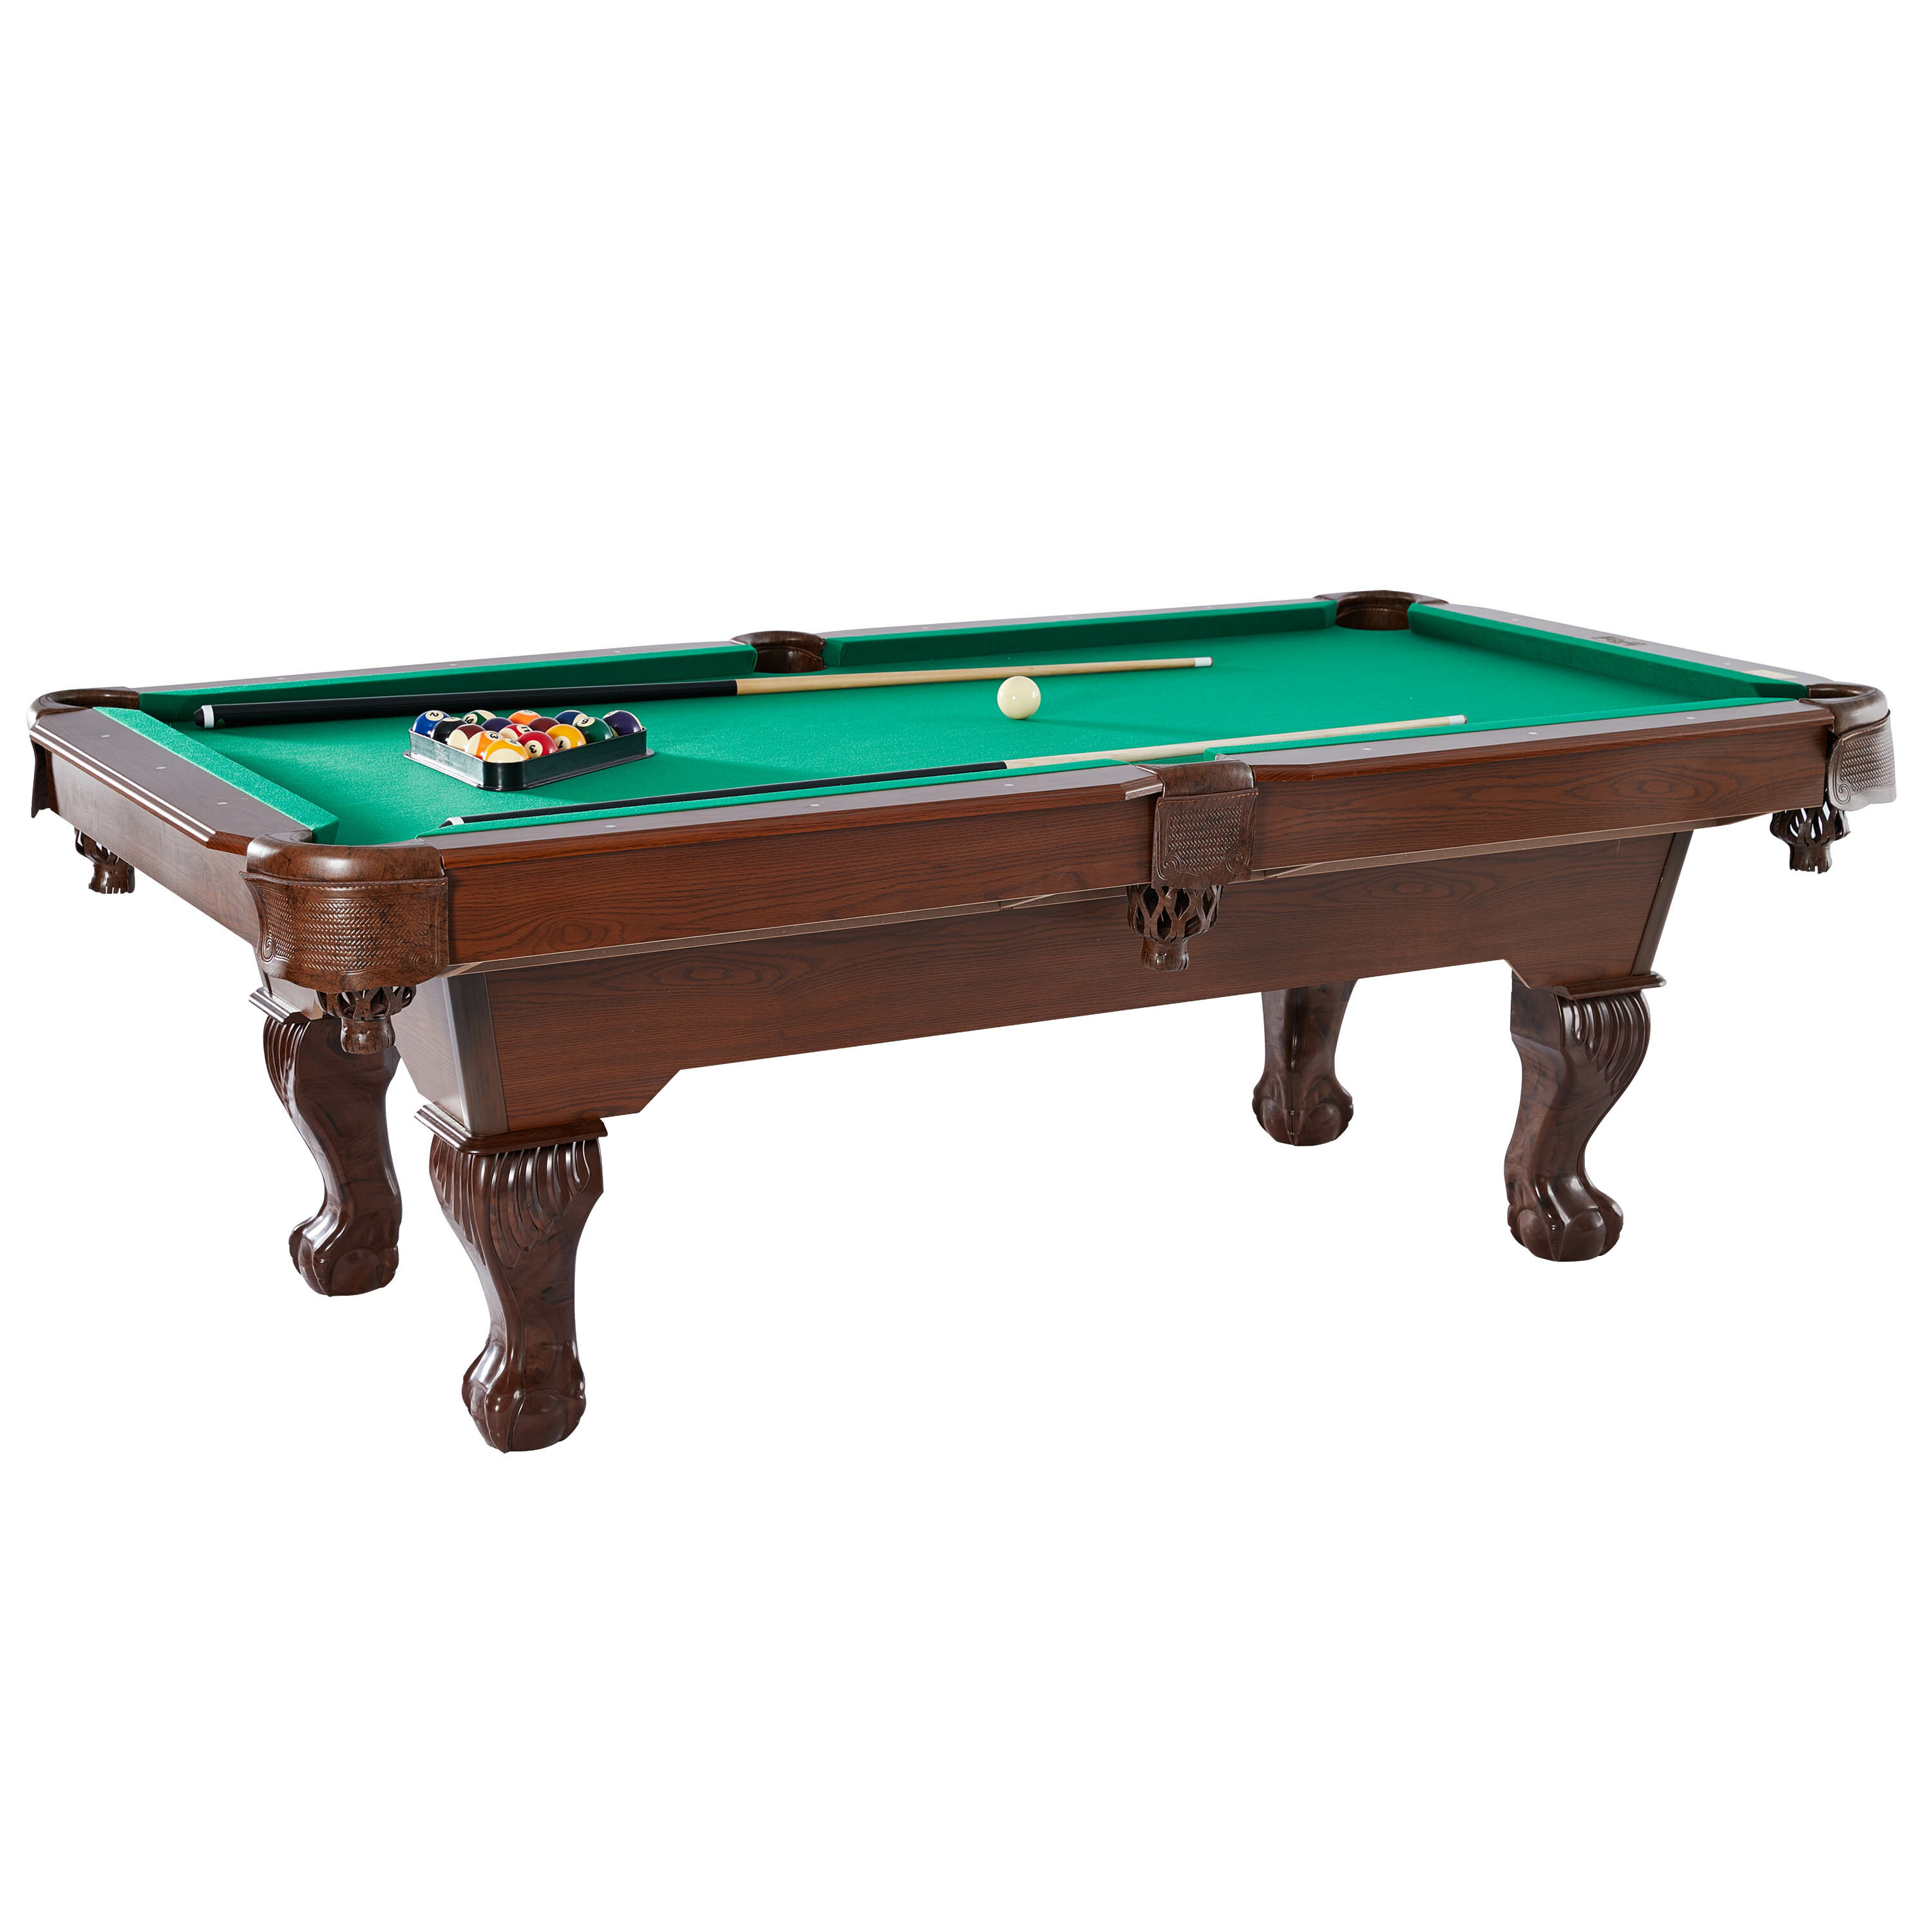 MD Sports Barrington Springdale Pool Table Reviews Wayfair - Accuslate pool table